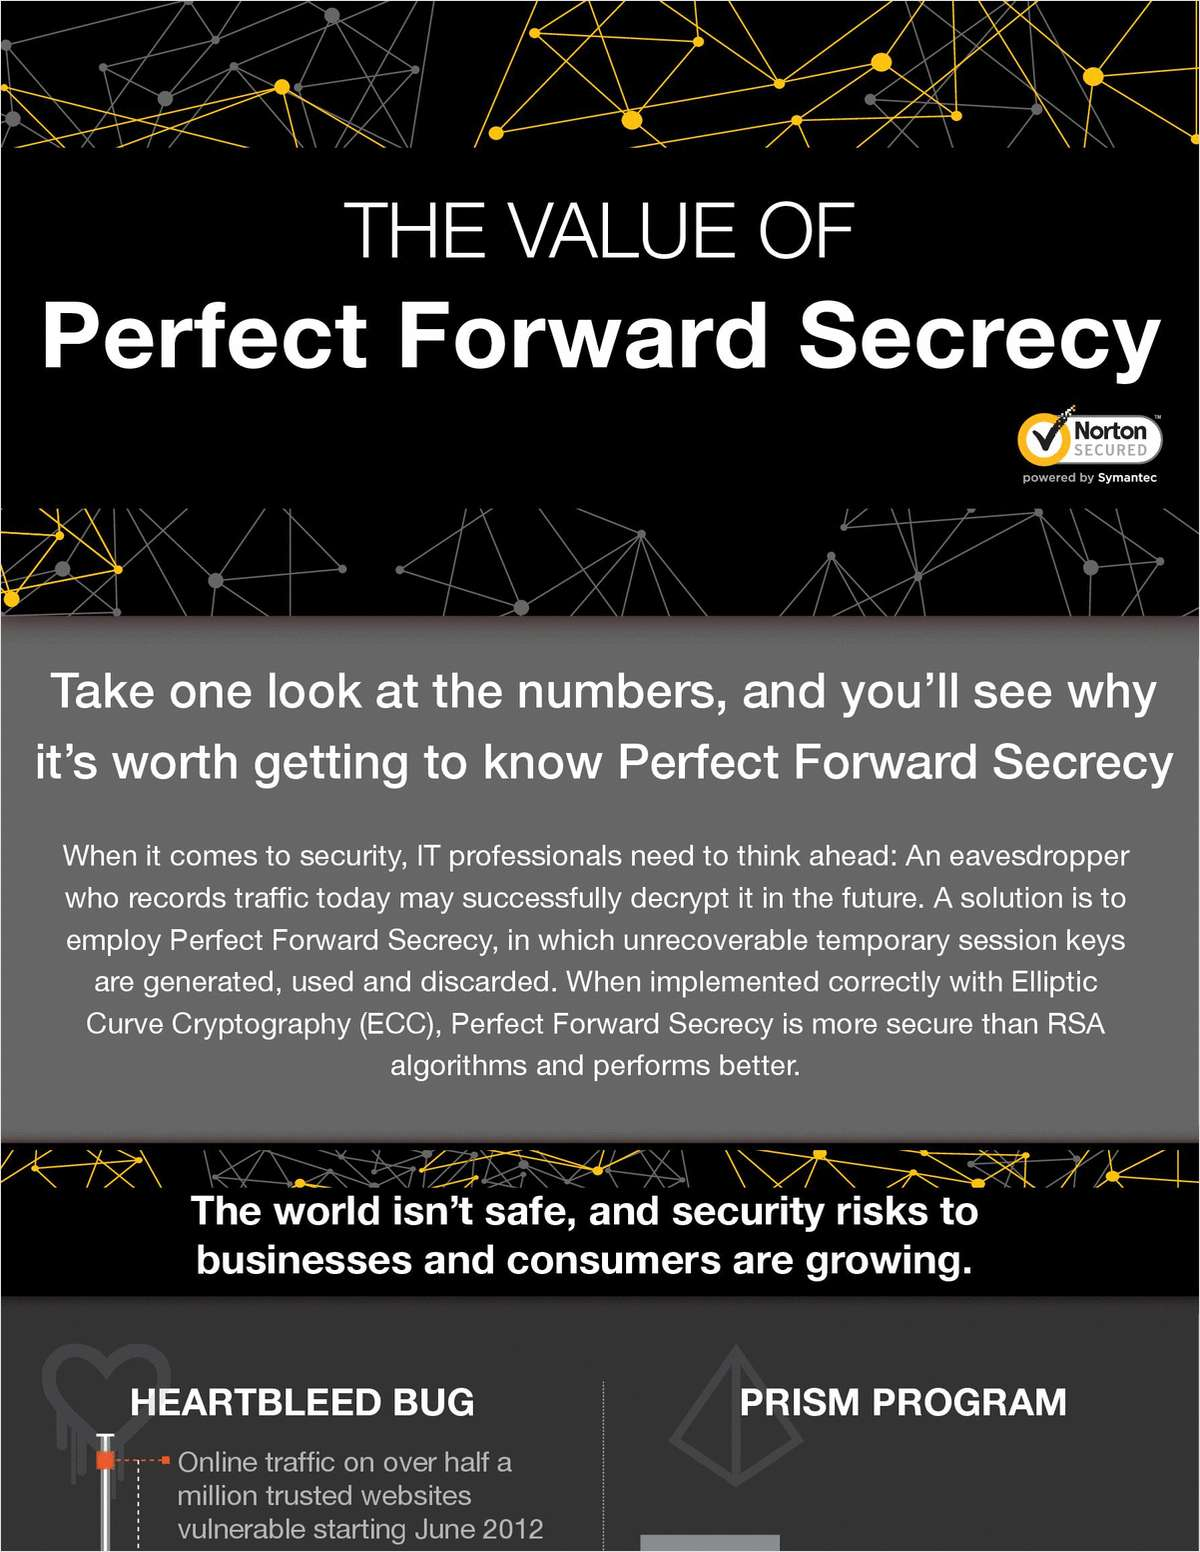 The Value of Perfect Forward Secrecy